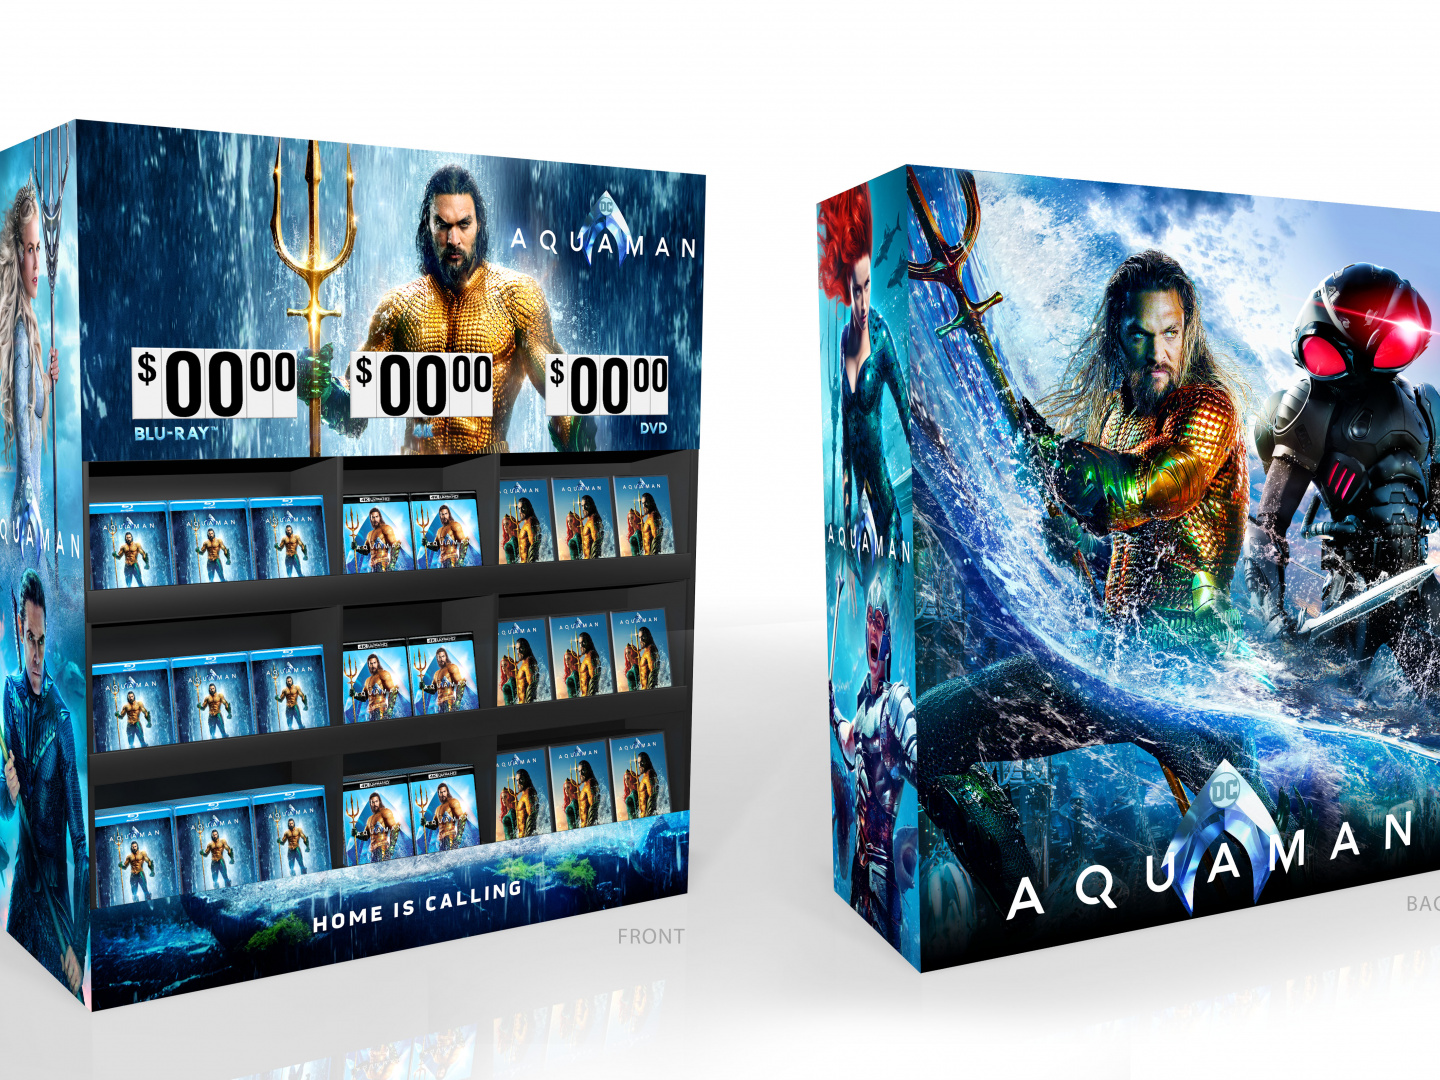 Image for Aquaman Home Entertainment Walmart Display Home Video Cube